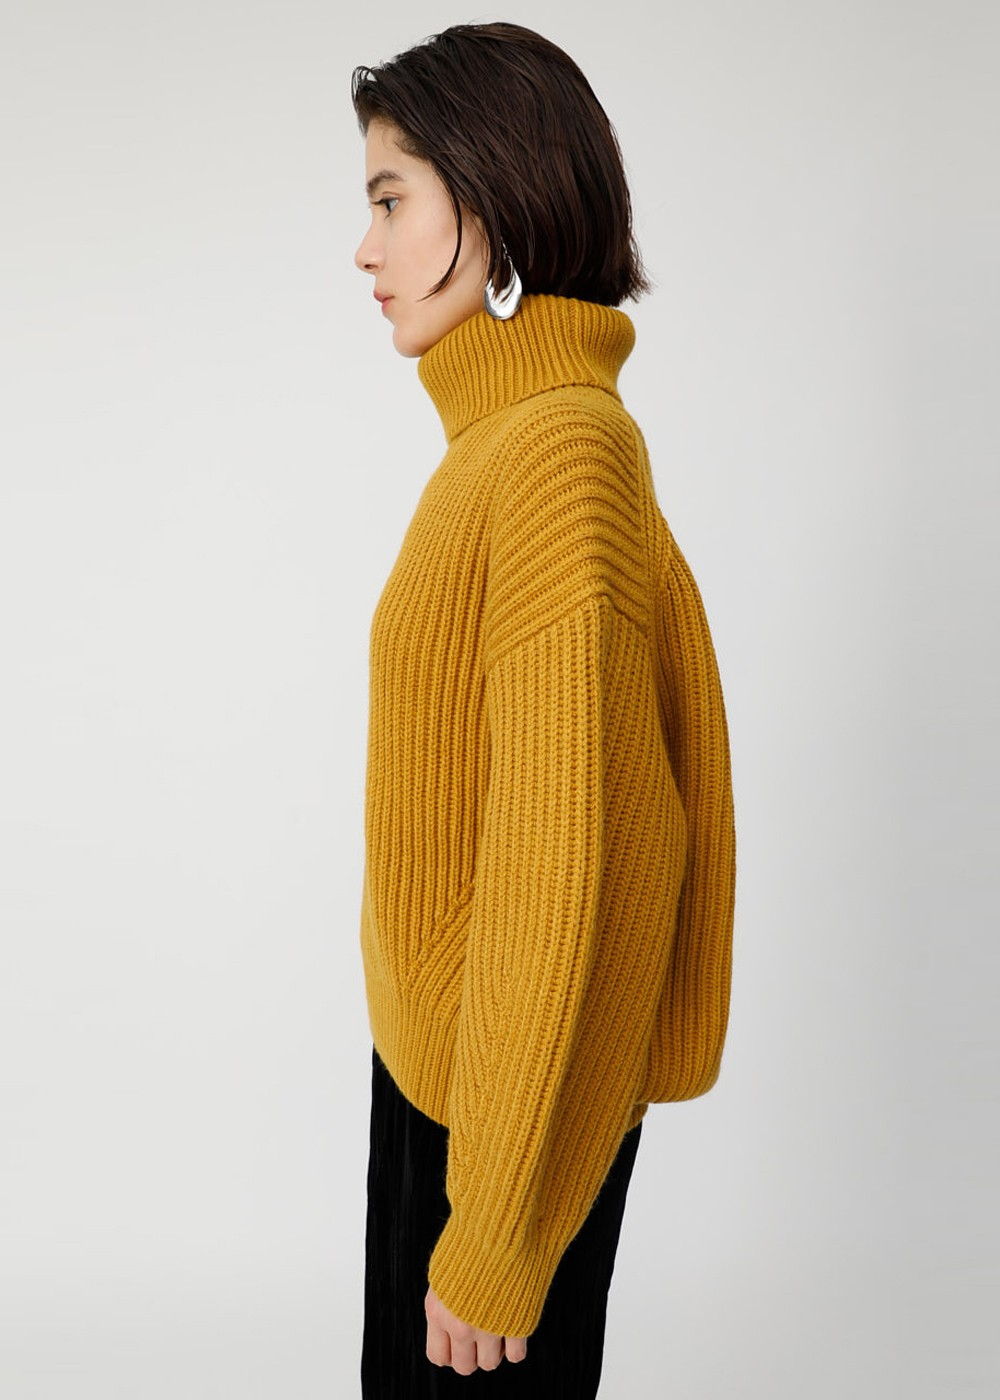 【最大60%OFF】HI NECK VOLUME SLEEVE KNIT|YEL|ニット|MOUSSY